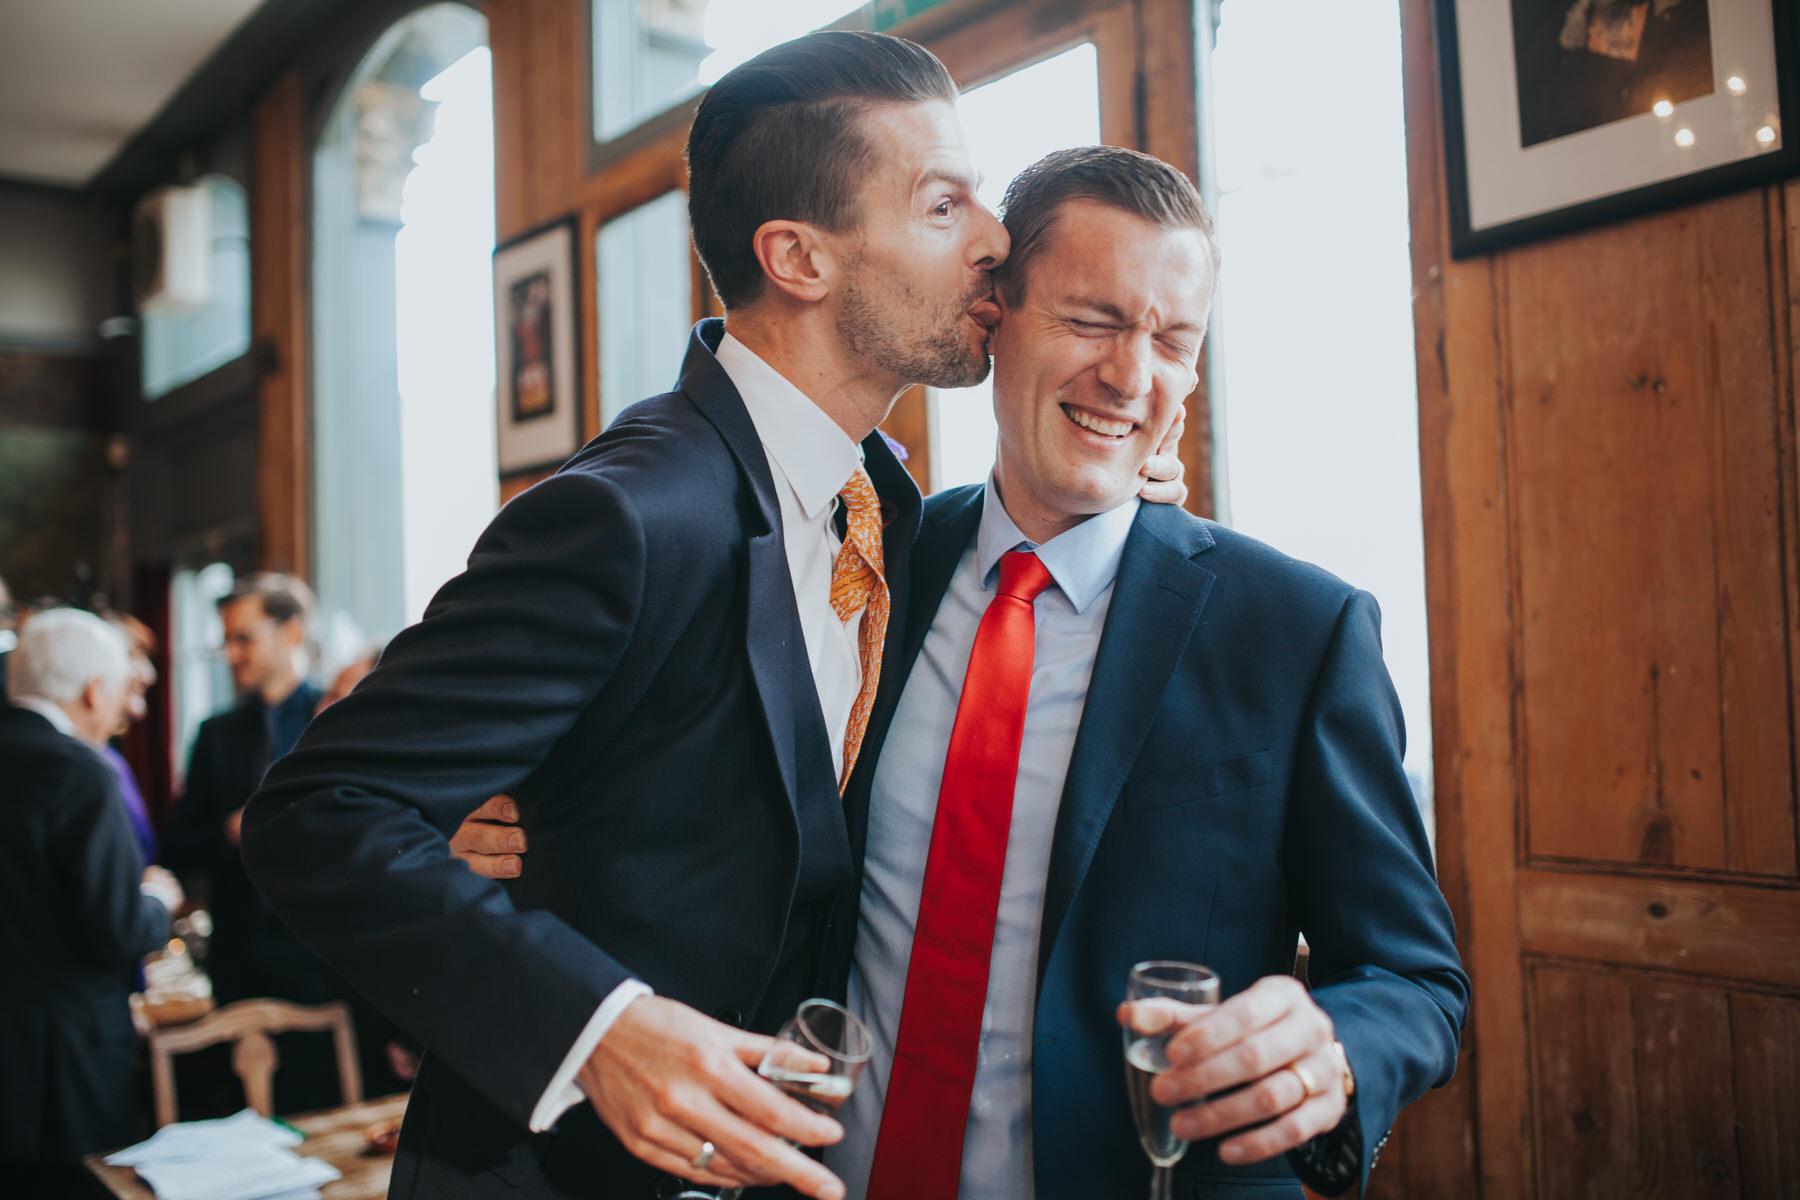 groom licking friends face reportage wedding photo